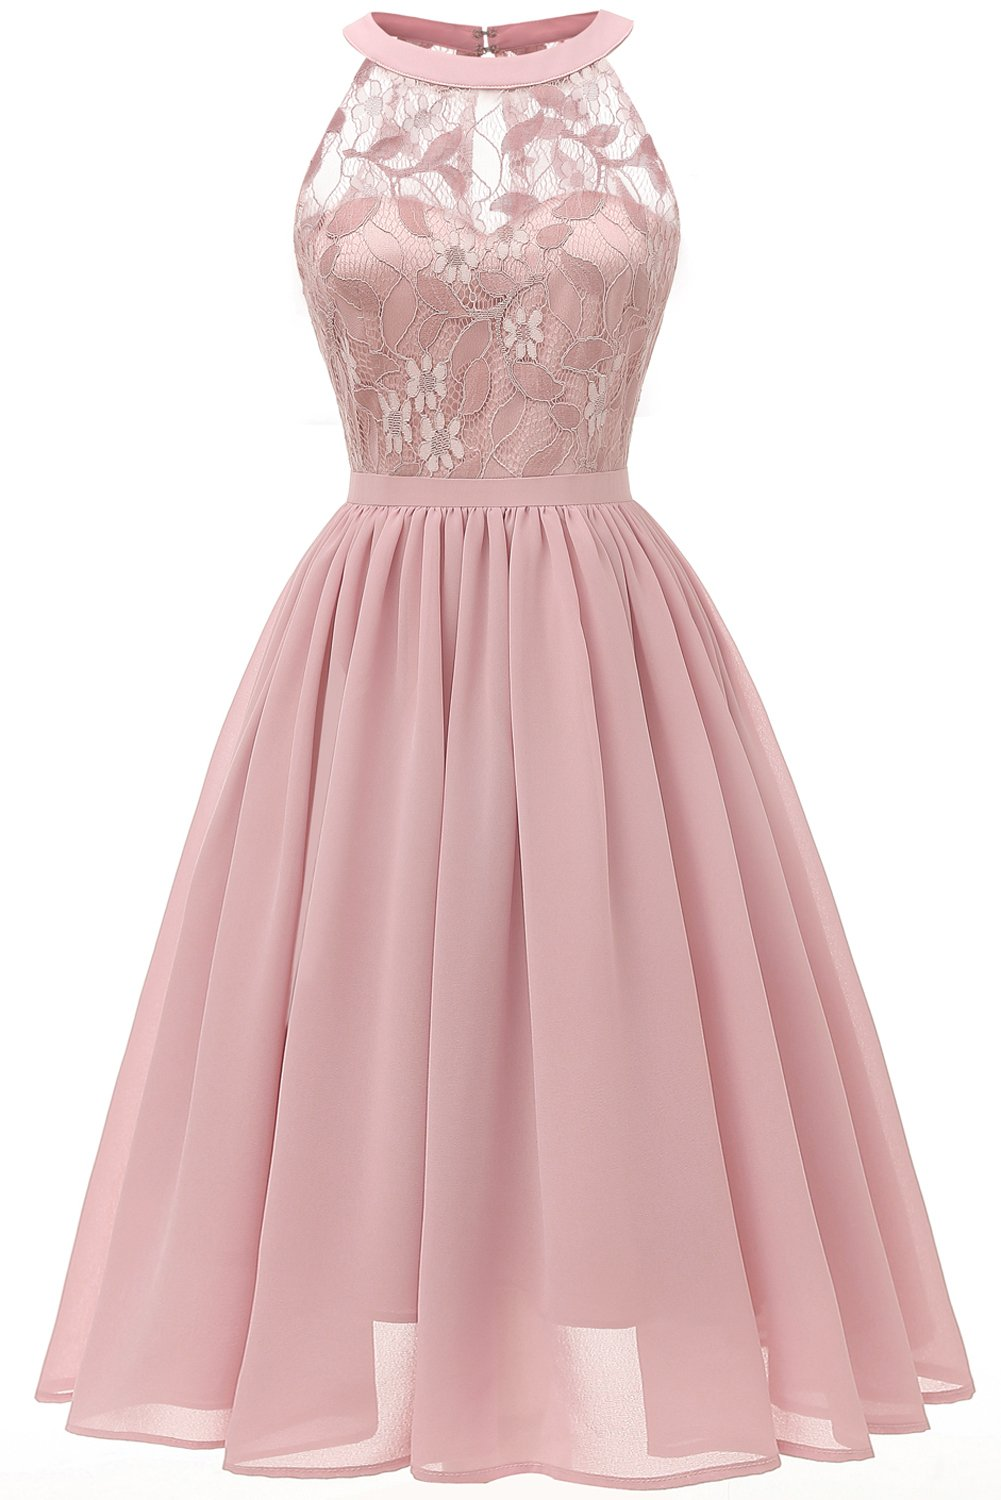 MILANO BRIDE Vintage Cocktail Party Halter Floral Lace Homecoming Prom Dress for Women-XXL-Blush